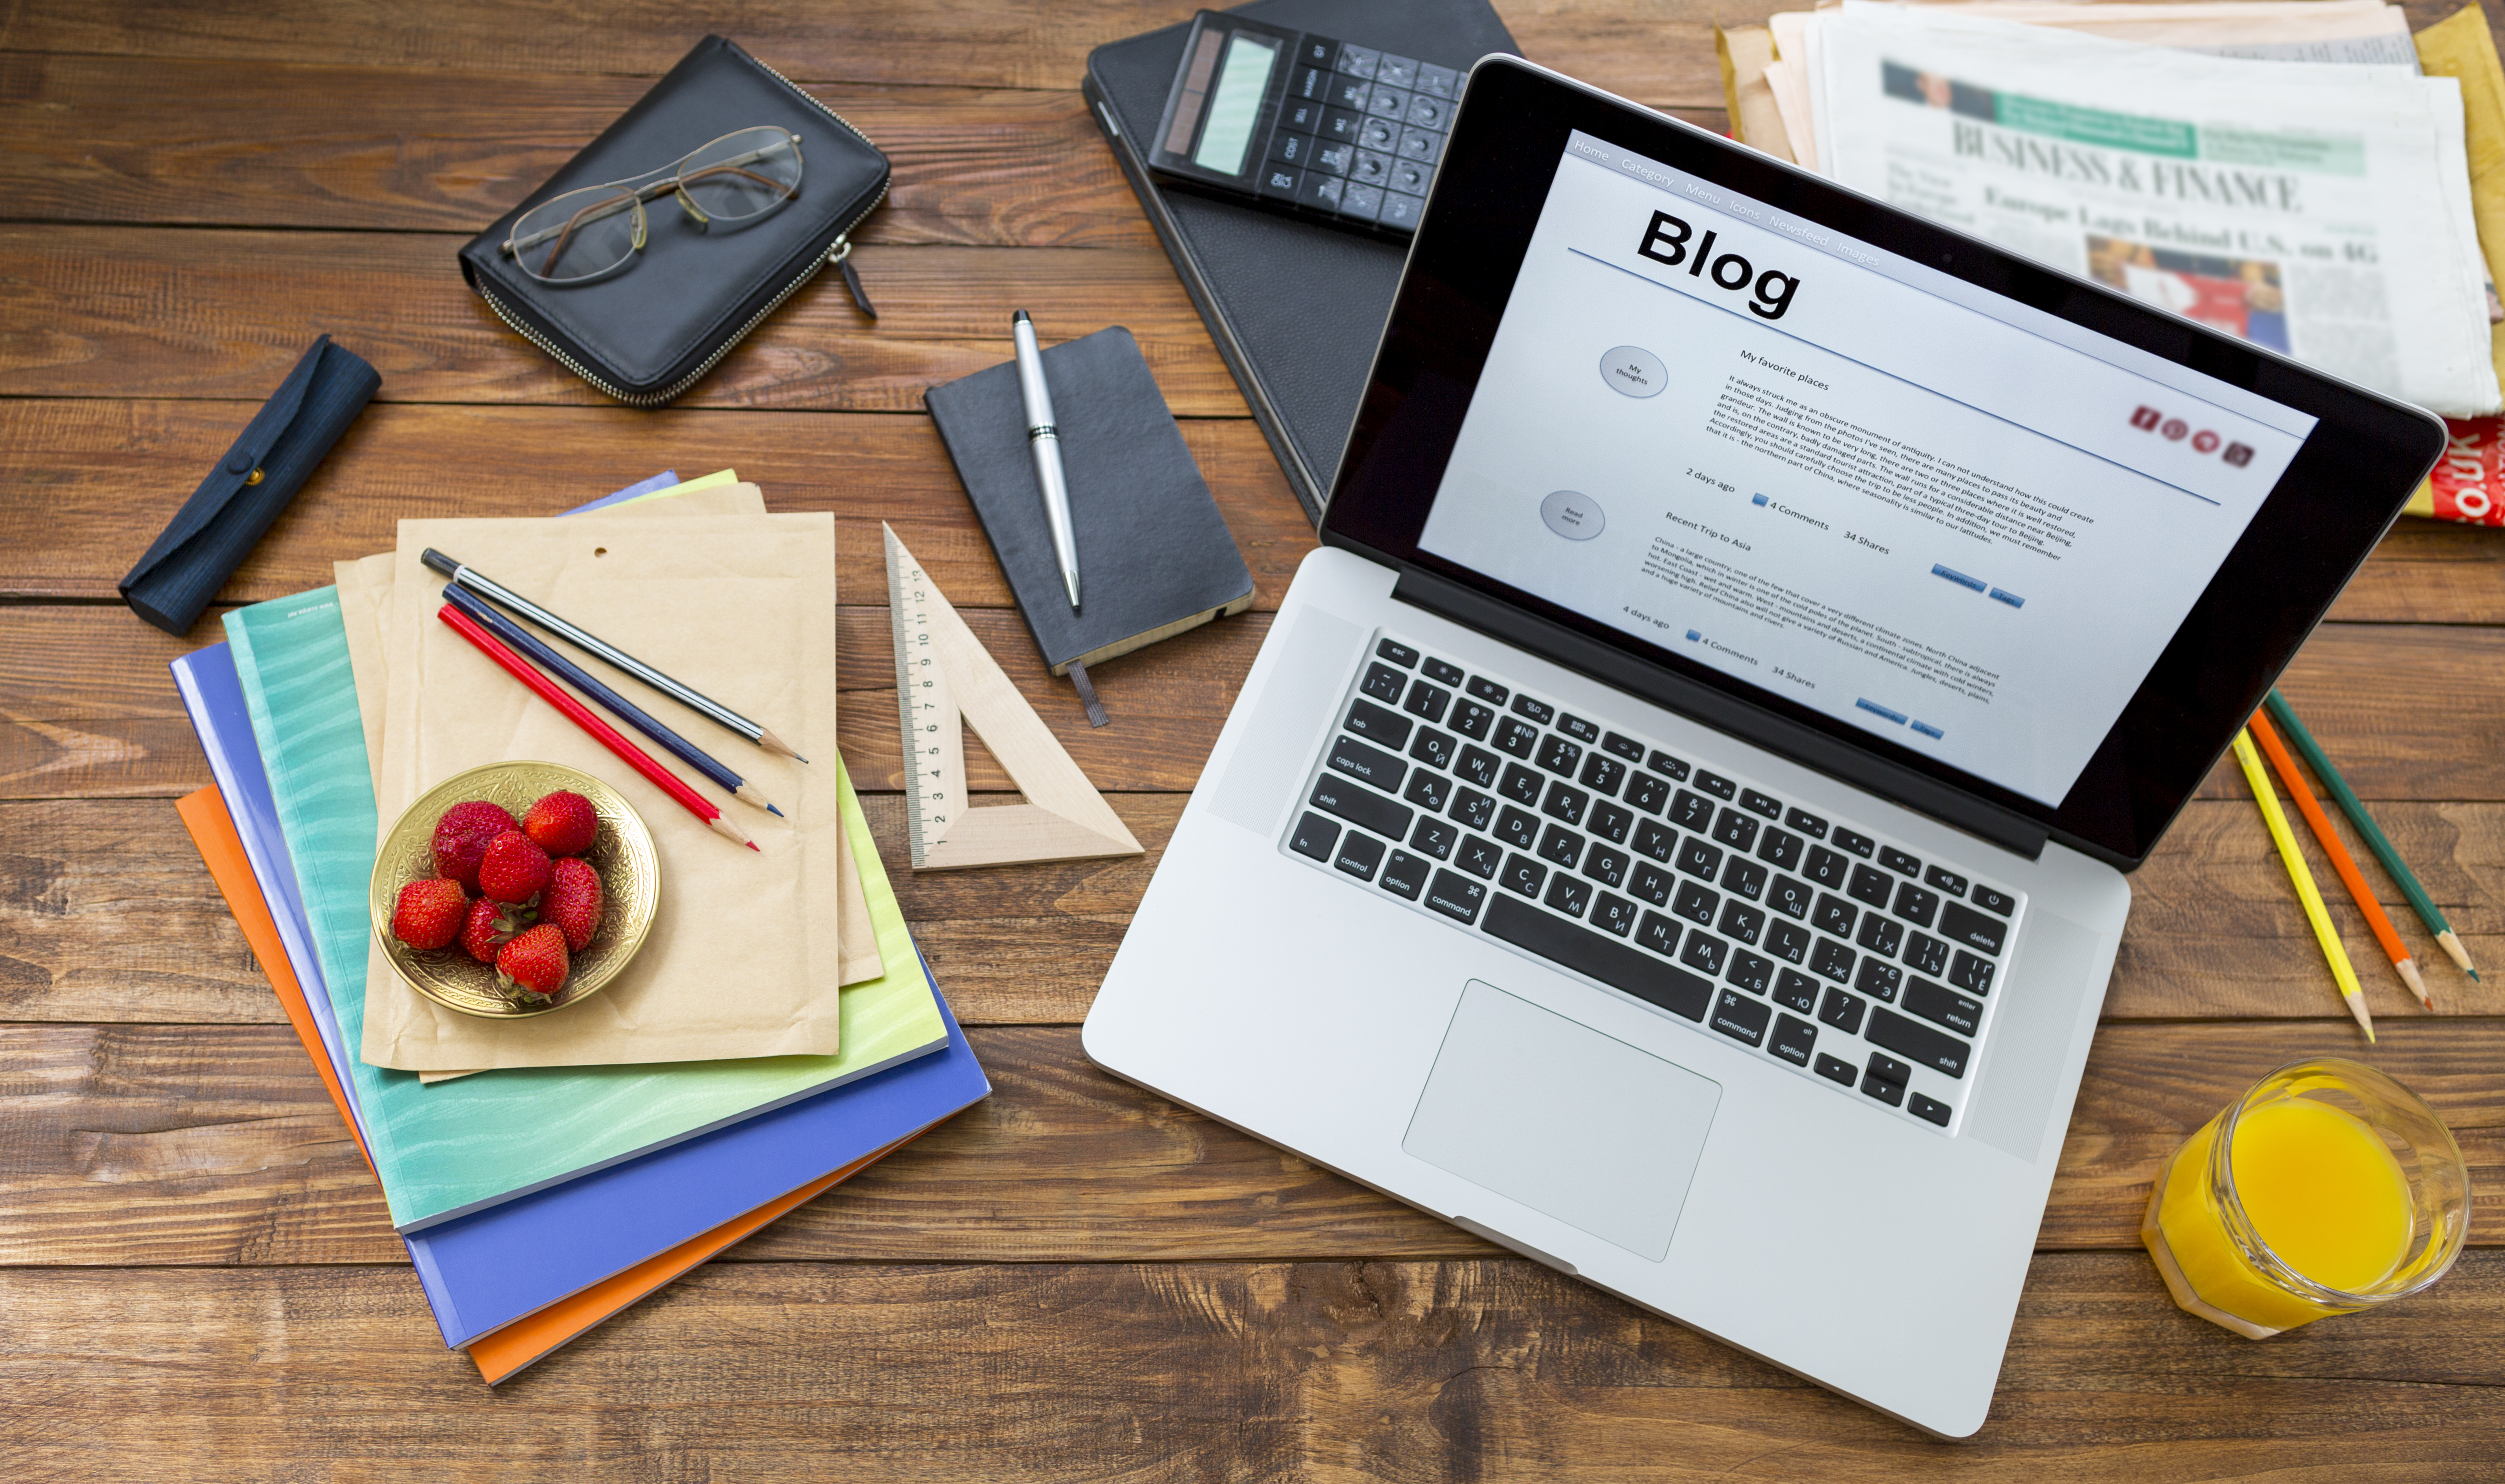 blogging Learn to blog step-by-step guide to learn how to start a blog, choose the best blogging platform and avoid the common blogging mistakes made by newbies.